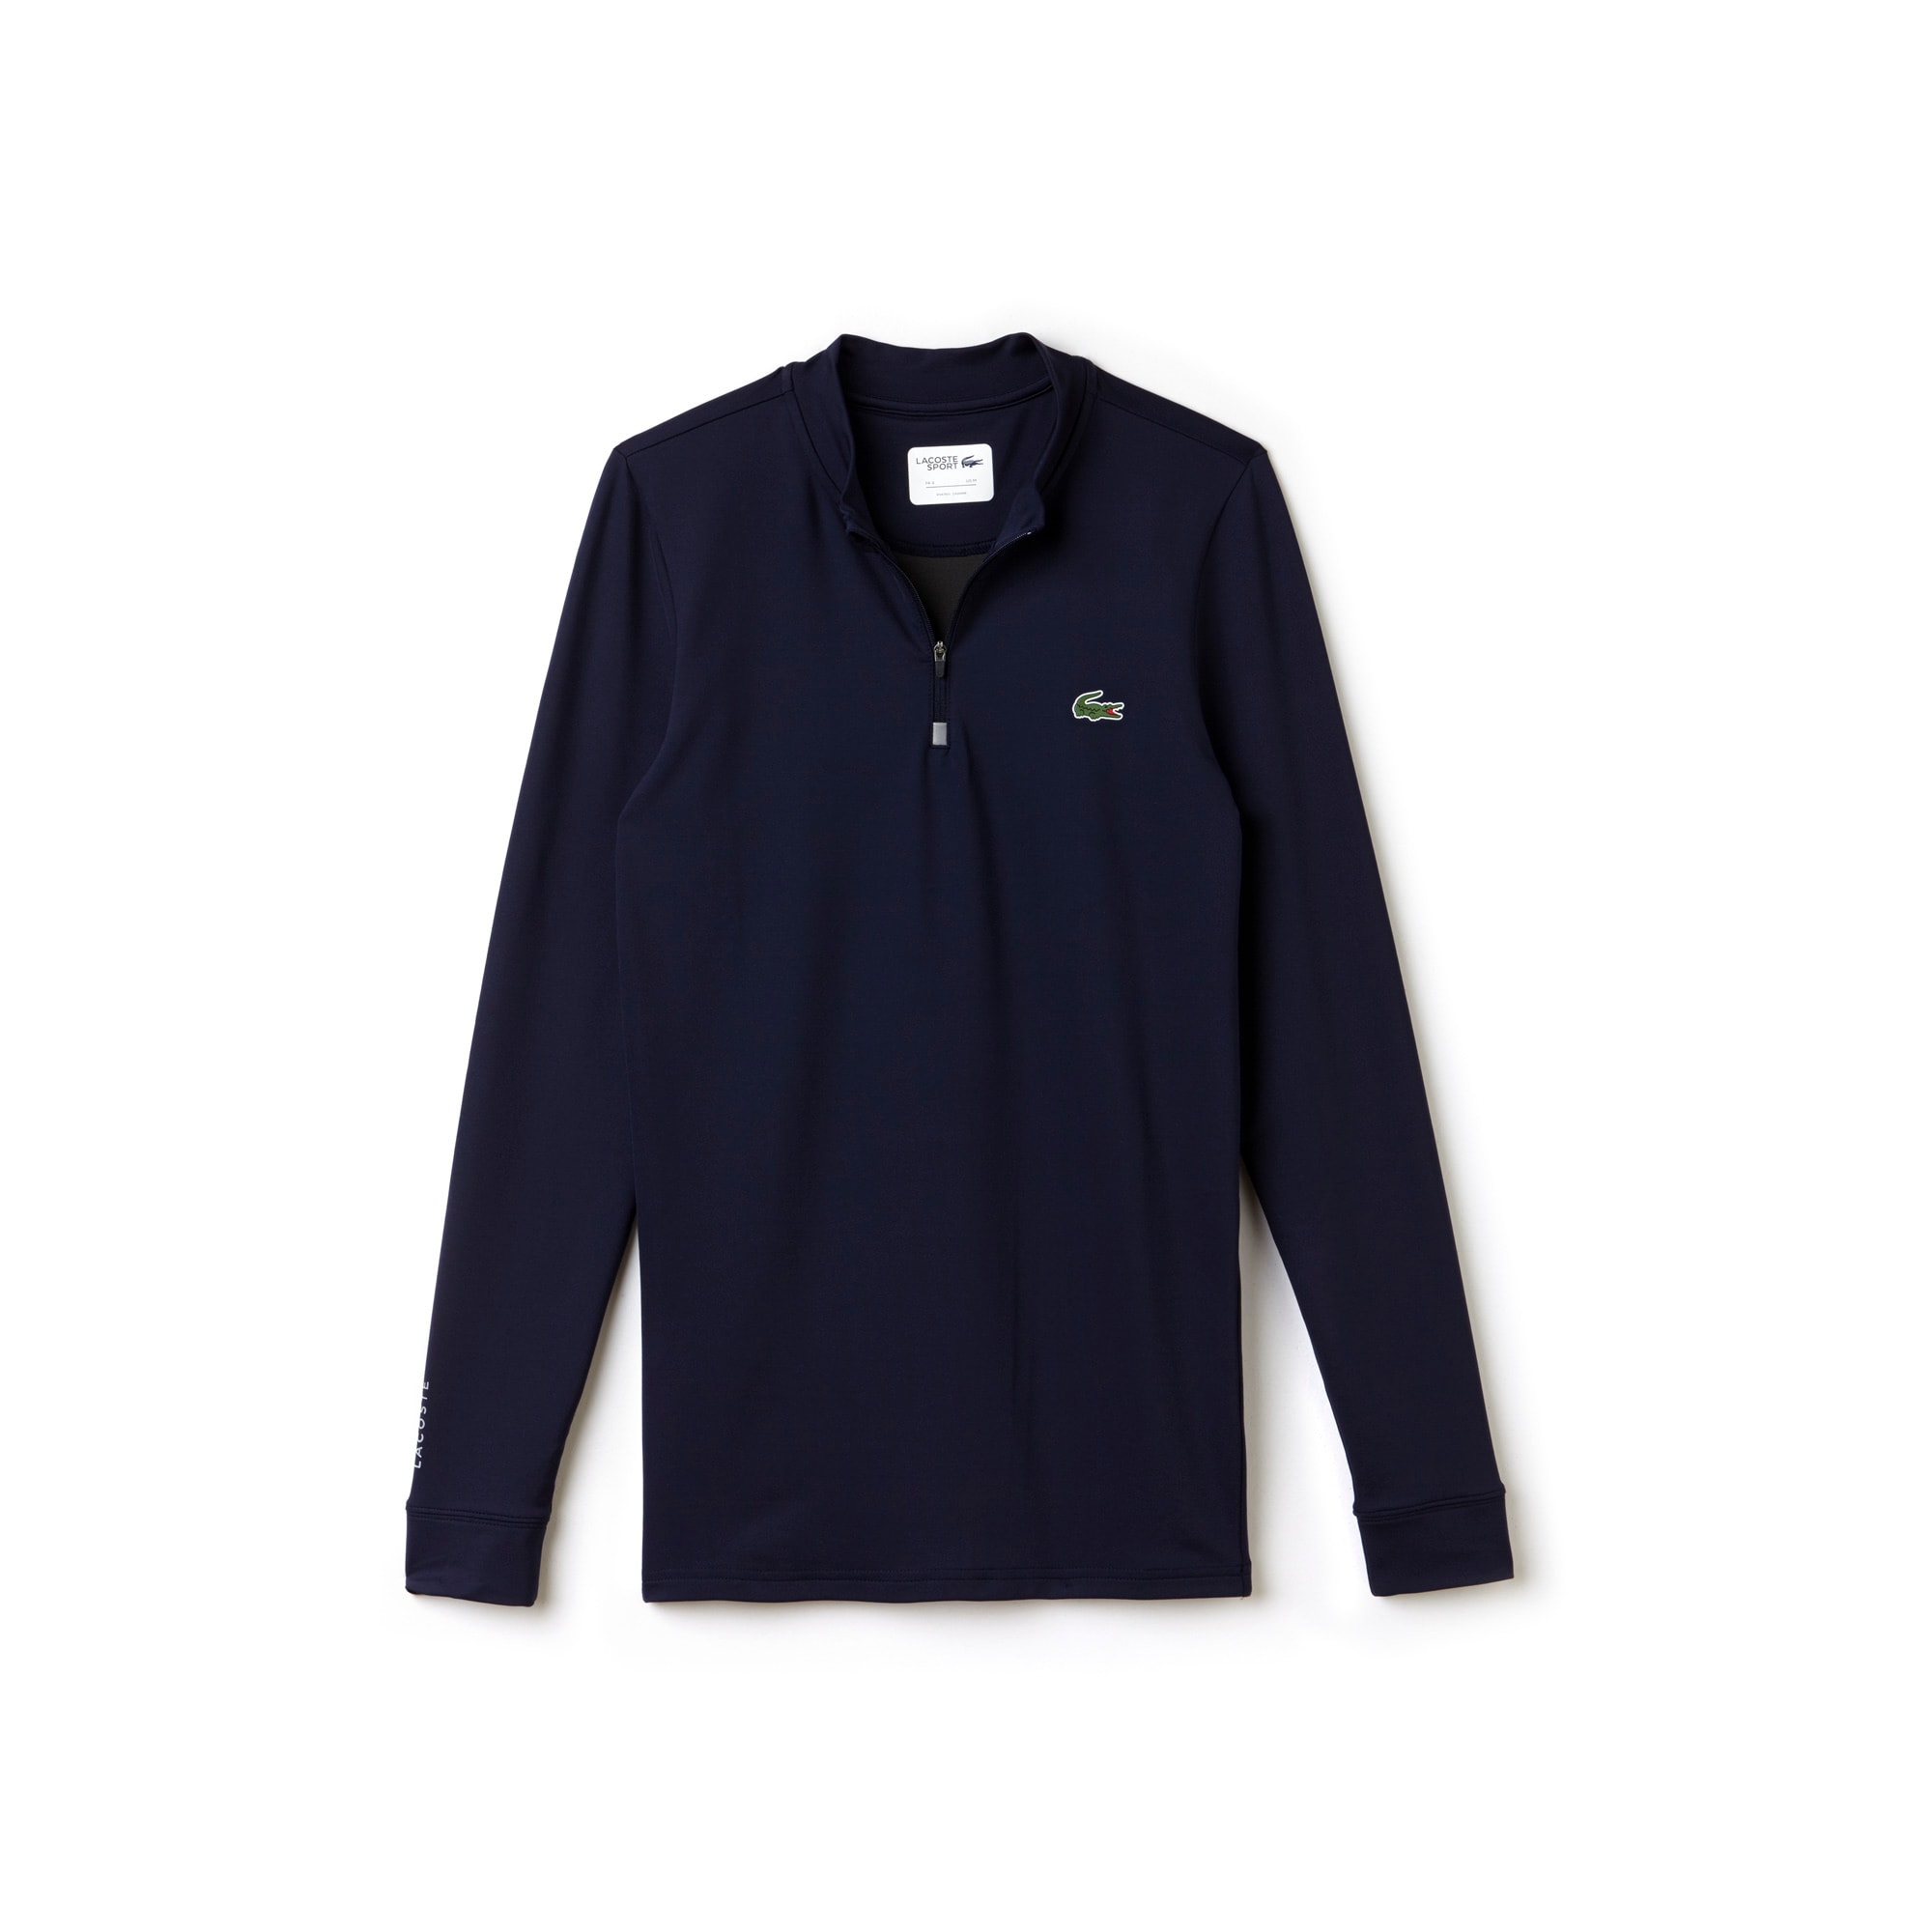 라코스테 Lacoste Mens SPORT Golf Tech Jersey T-shirt,navy blue